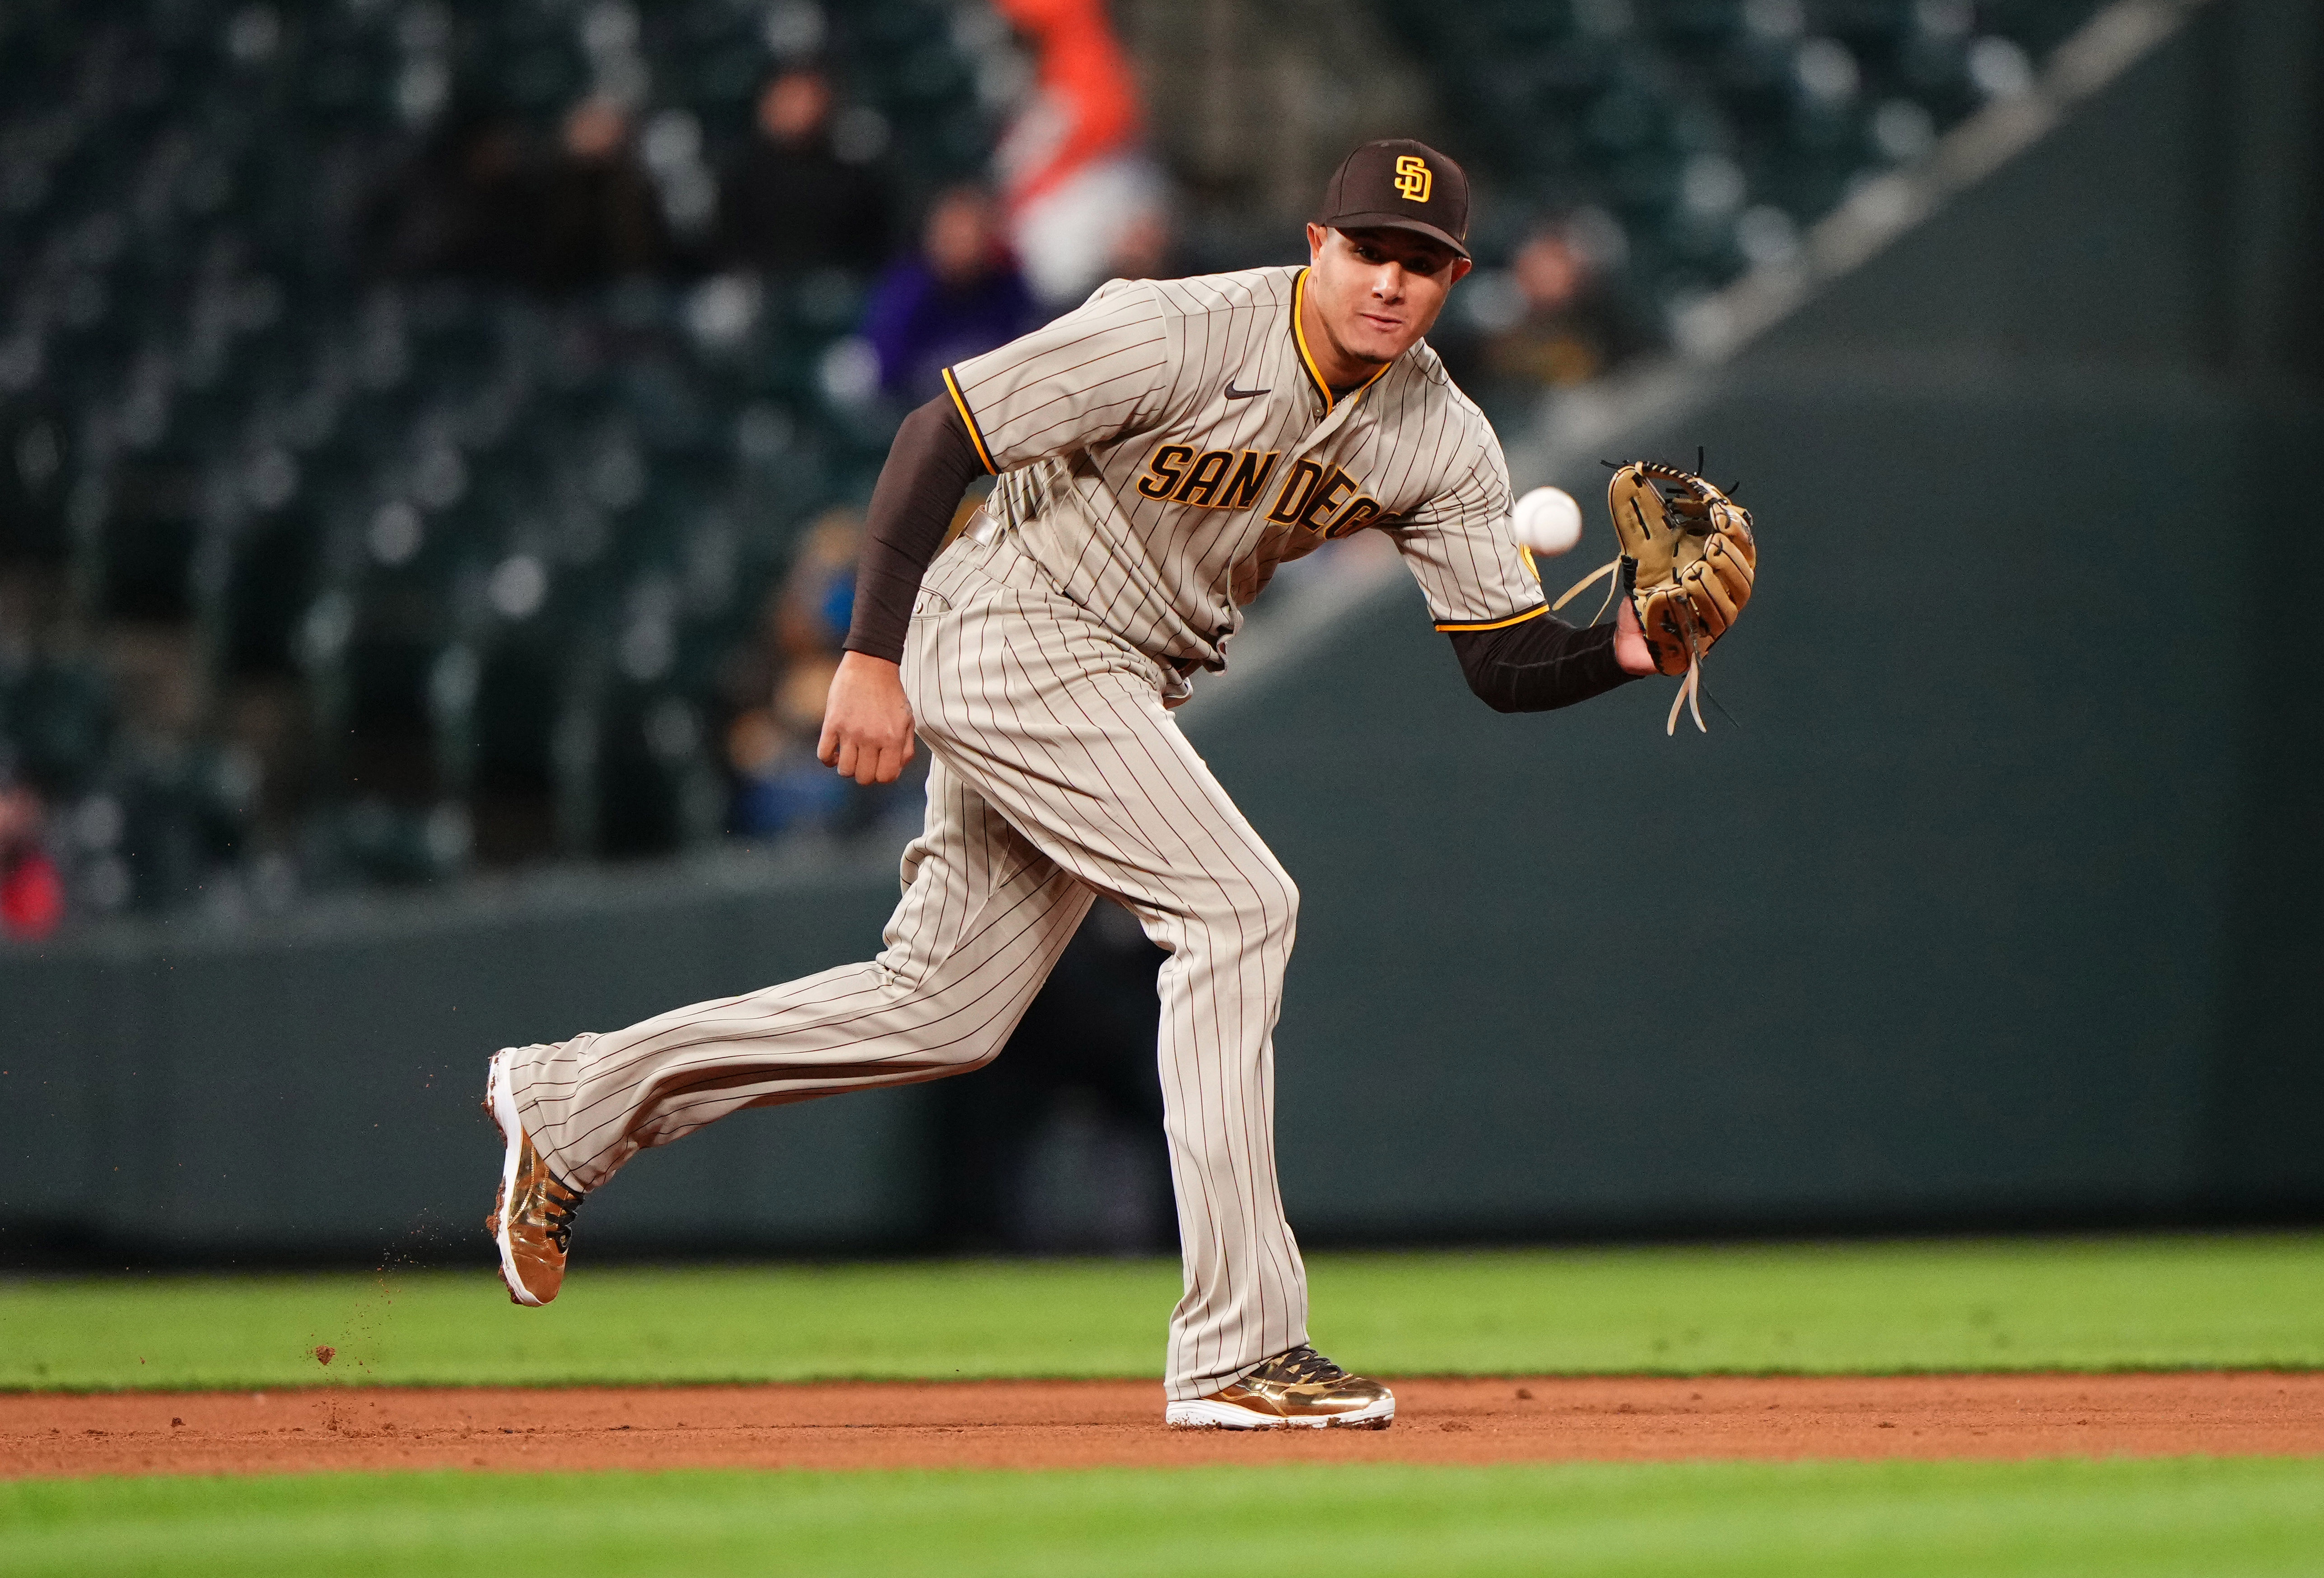 May 11, 2021; Denver, Colorado, USA; San Diego Padres third baseman Manny Machado (13) fields a ball during the ninth inning against the Colorado Rockies at Coors Field. Mandatory Credit: Ron Chenoy-USA TODAY Sports